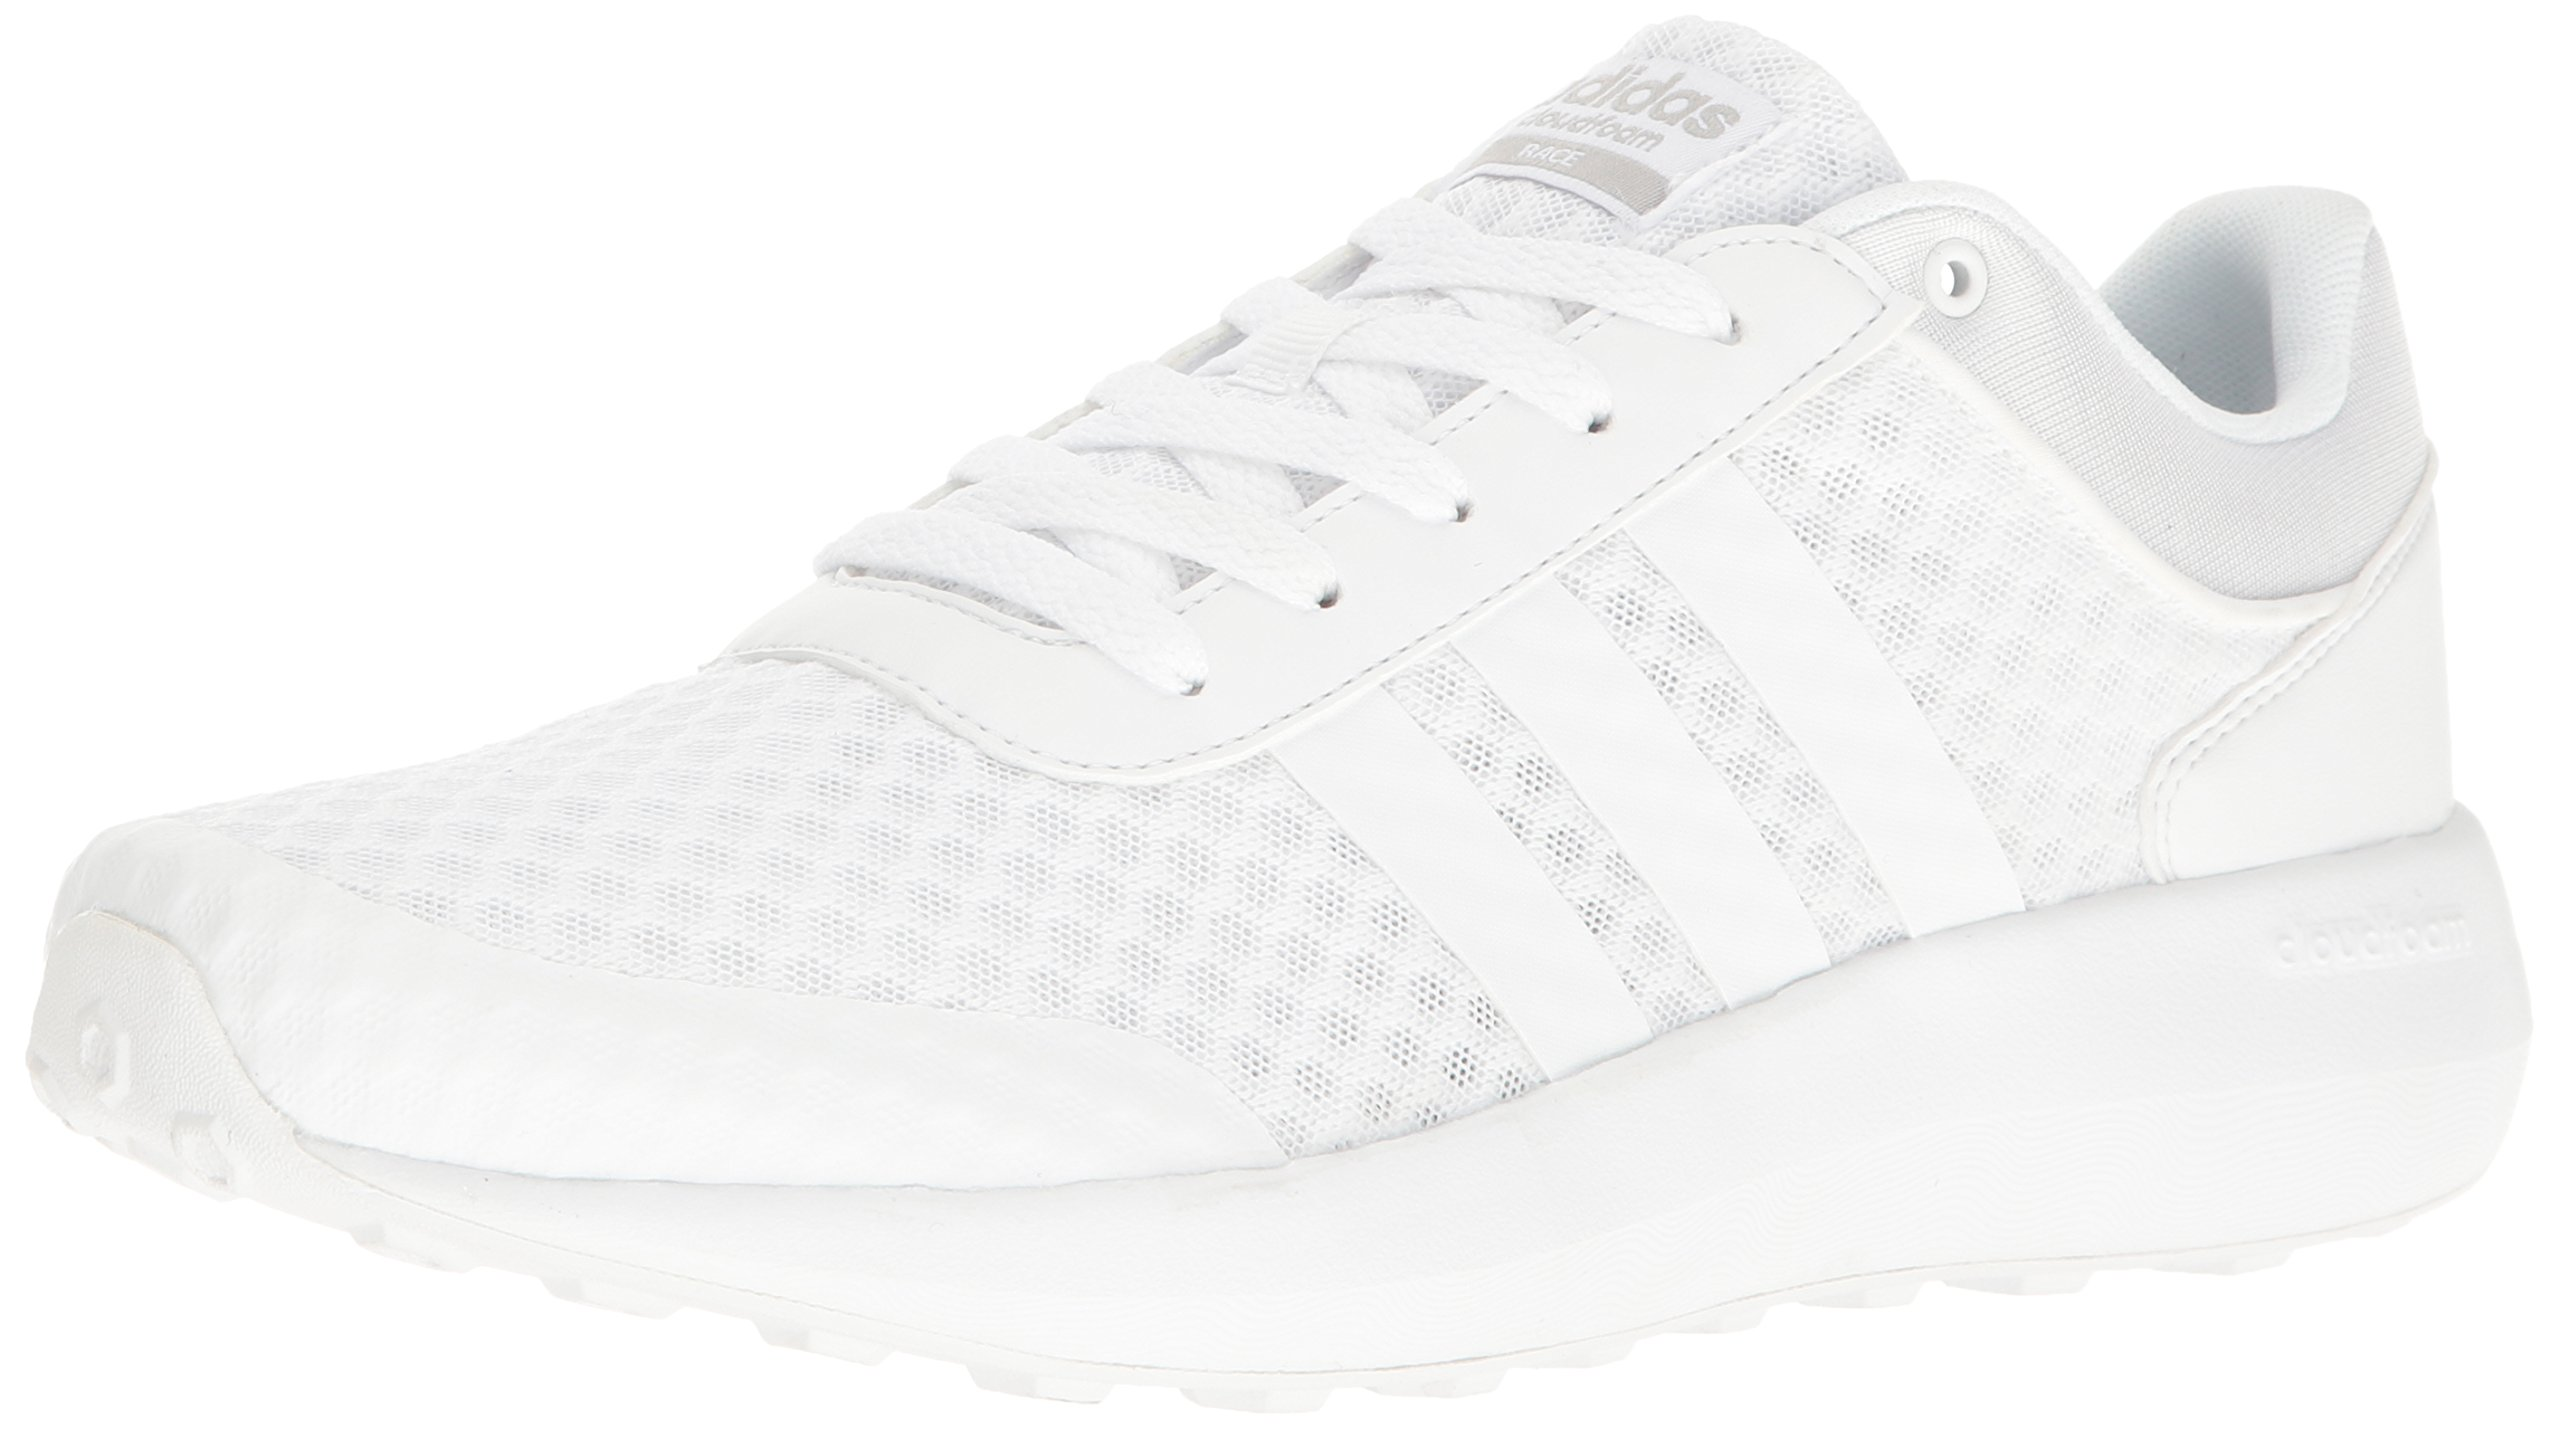 adidas Men's Cloudfoam Race Running Shoe, White/Clear Onix, 9 D-Medium by adidas (Image #1)